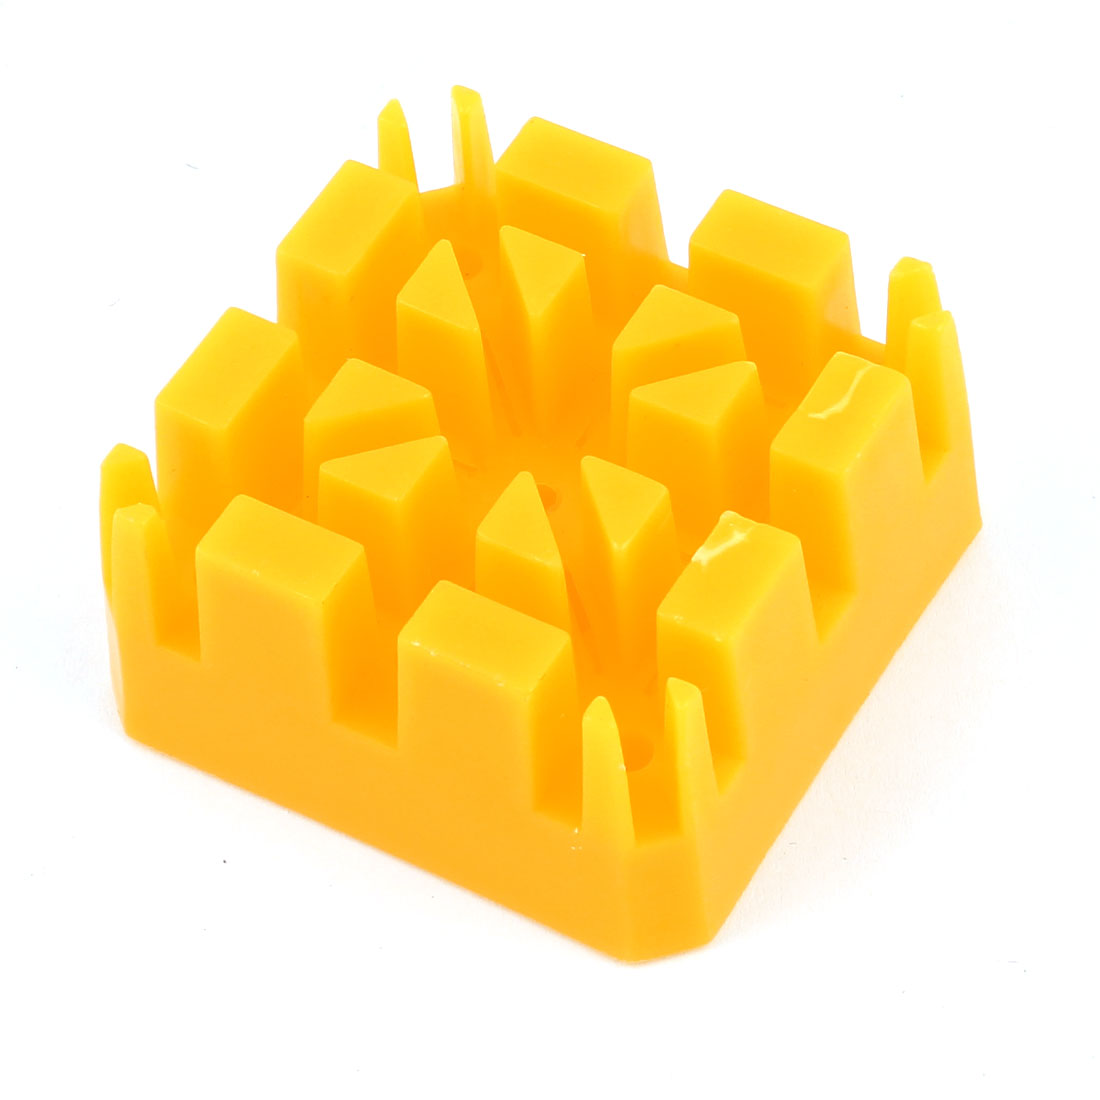 Orange Plastic Watchmakers Repair Tool Watchband Bracelet Holder